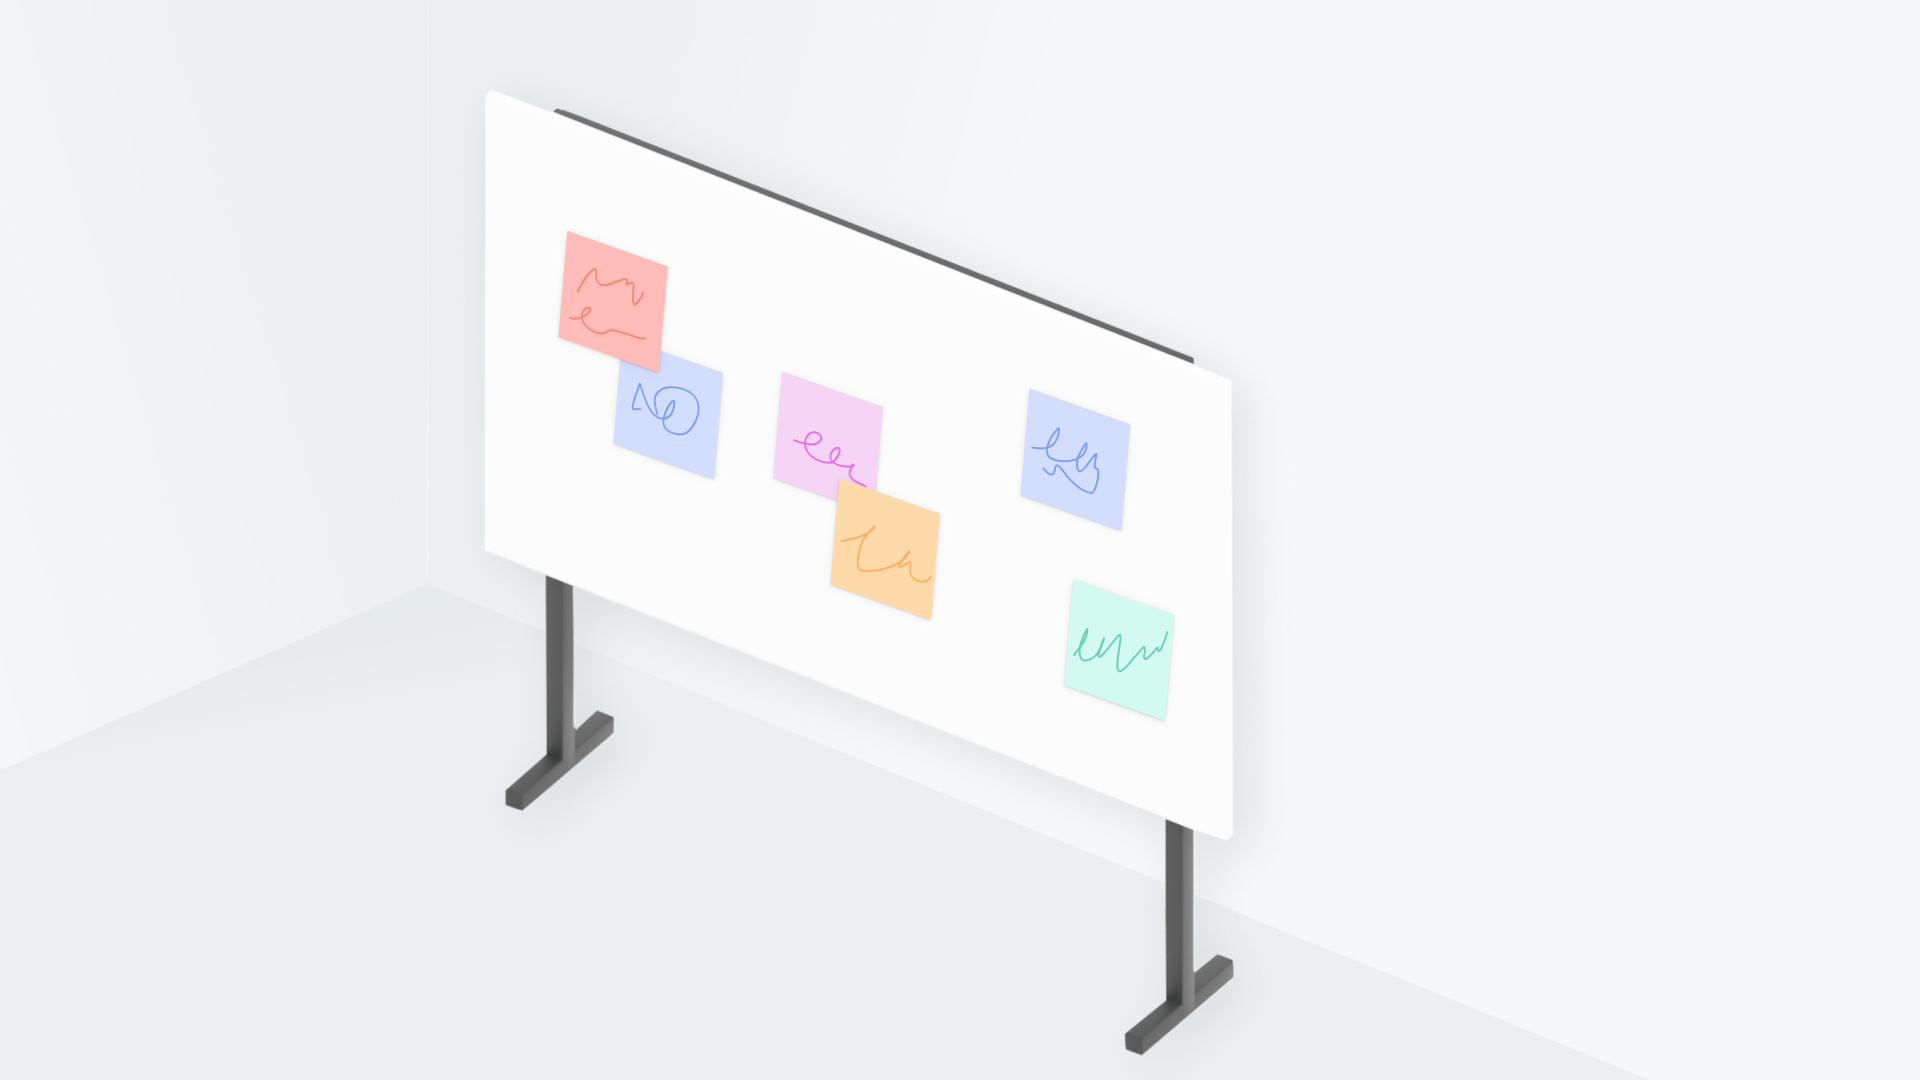 An image of a board with sticky notes on it.